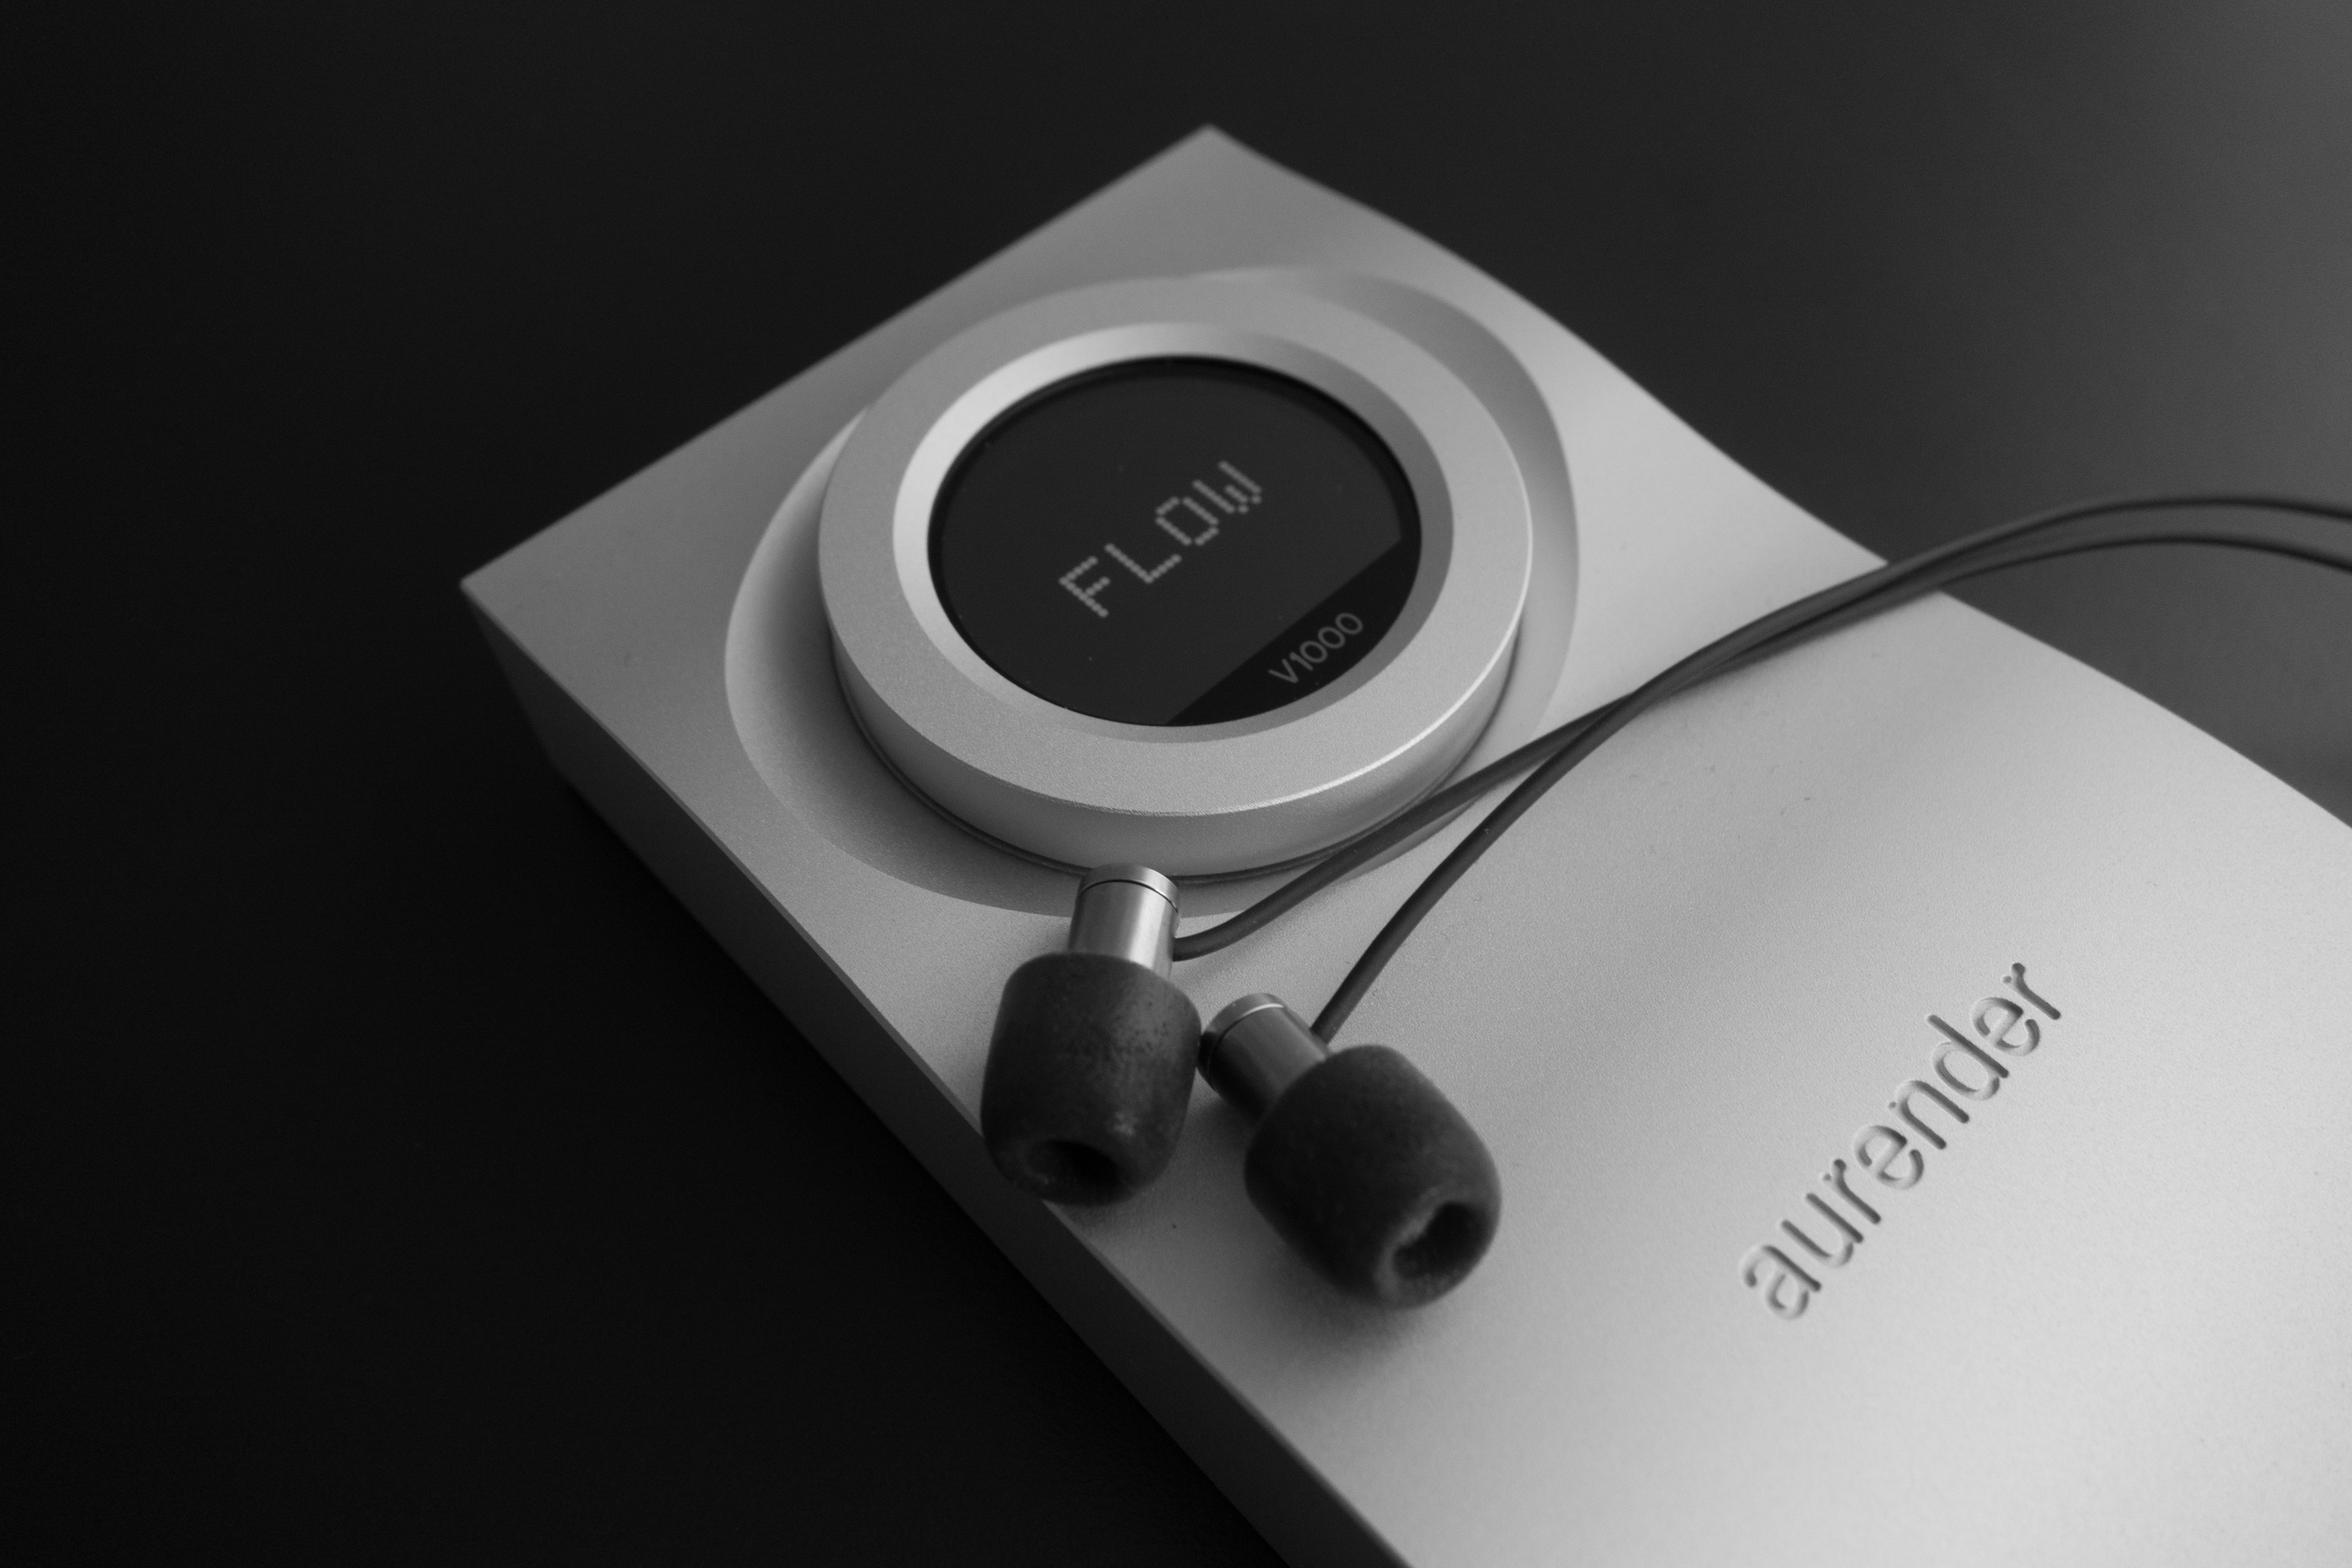 The Flare R2Pro Earphones & Aurender's Flow V1000 Amplifier &Dac. The Flare earphones have a unique sound quality but are let down by one of the worst earbud IEM cables we have ever had in a review.